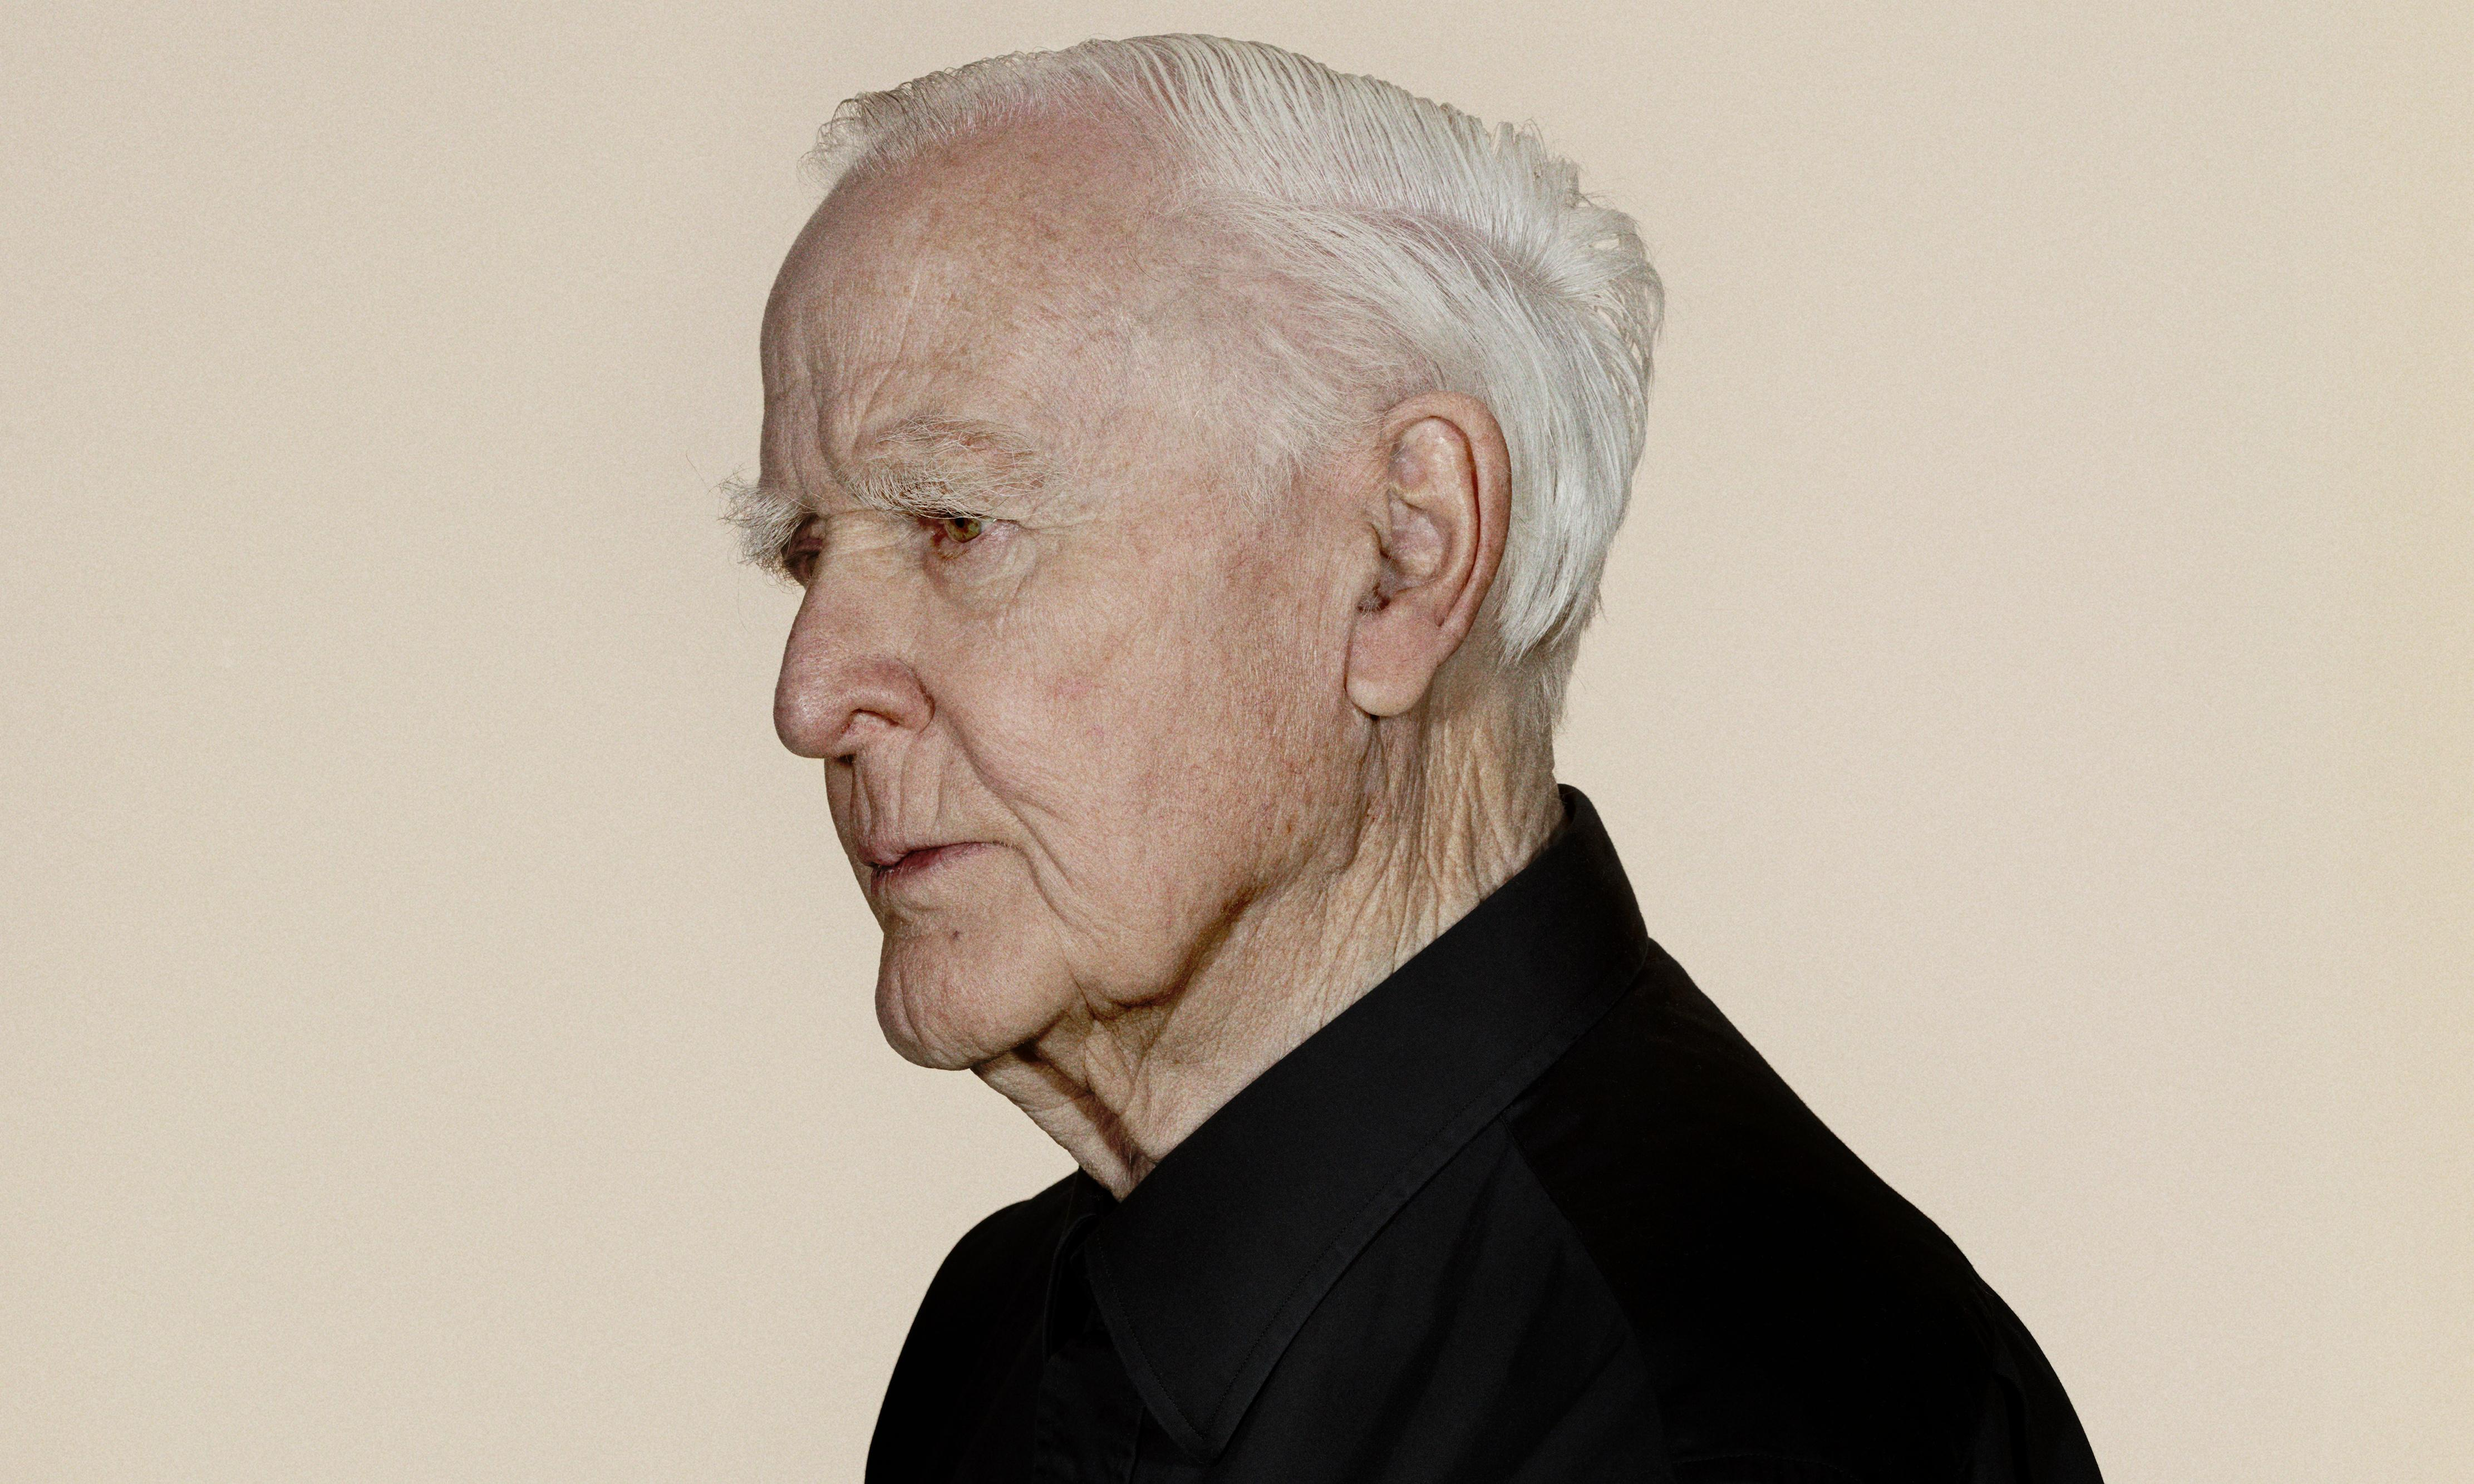 'My ties to England have loosened': John le Carré on Britain, Boris and Brexit